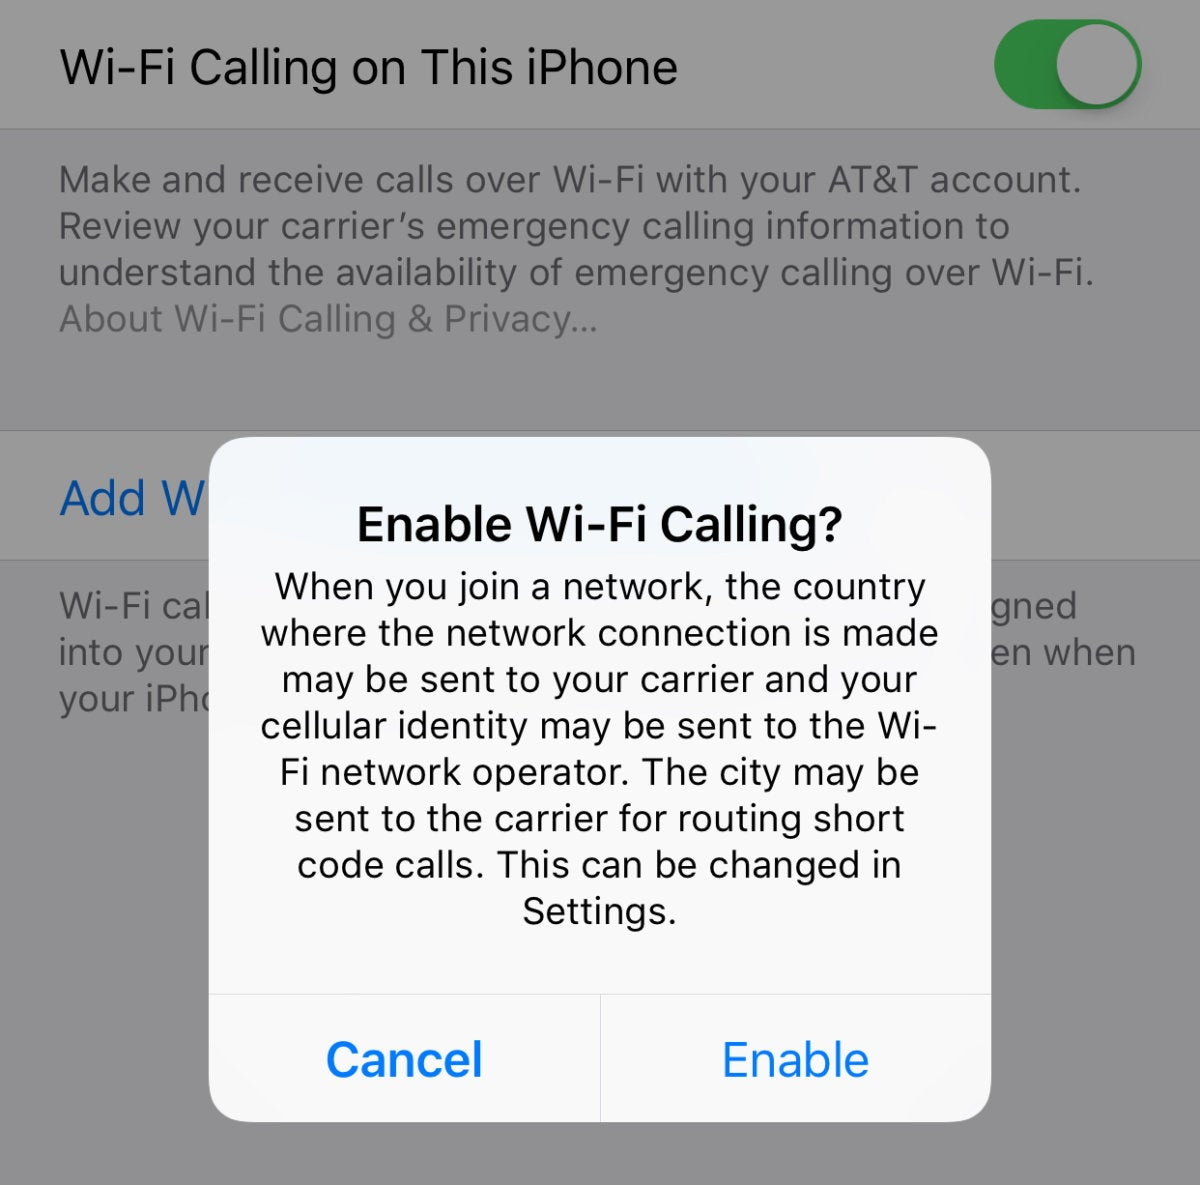 Is there a drawback to using Wi-Fi Calling on an iPhone